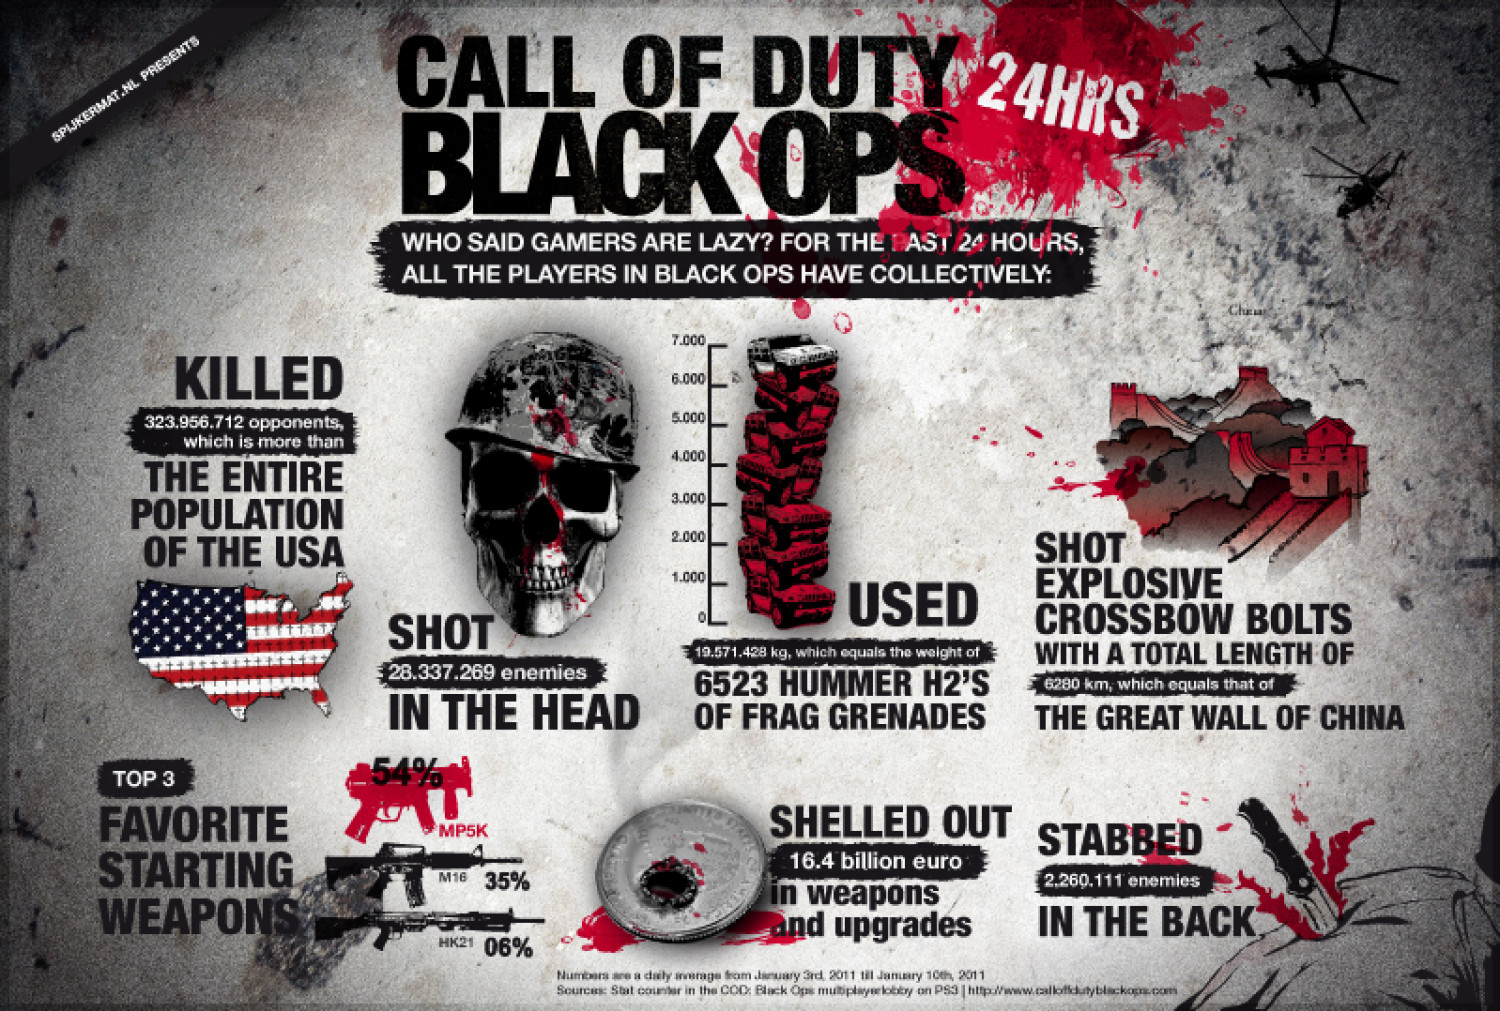 24 hrs Call of Duty: Black Ops Infographic